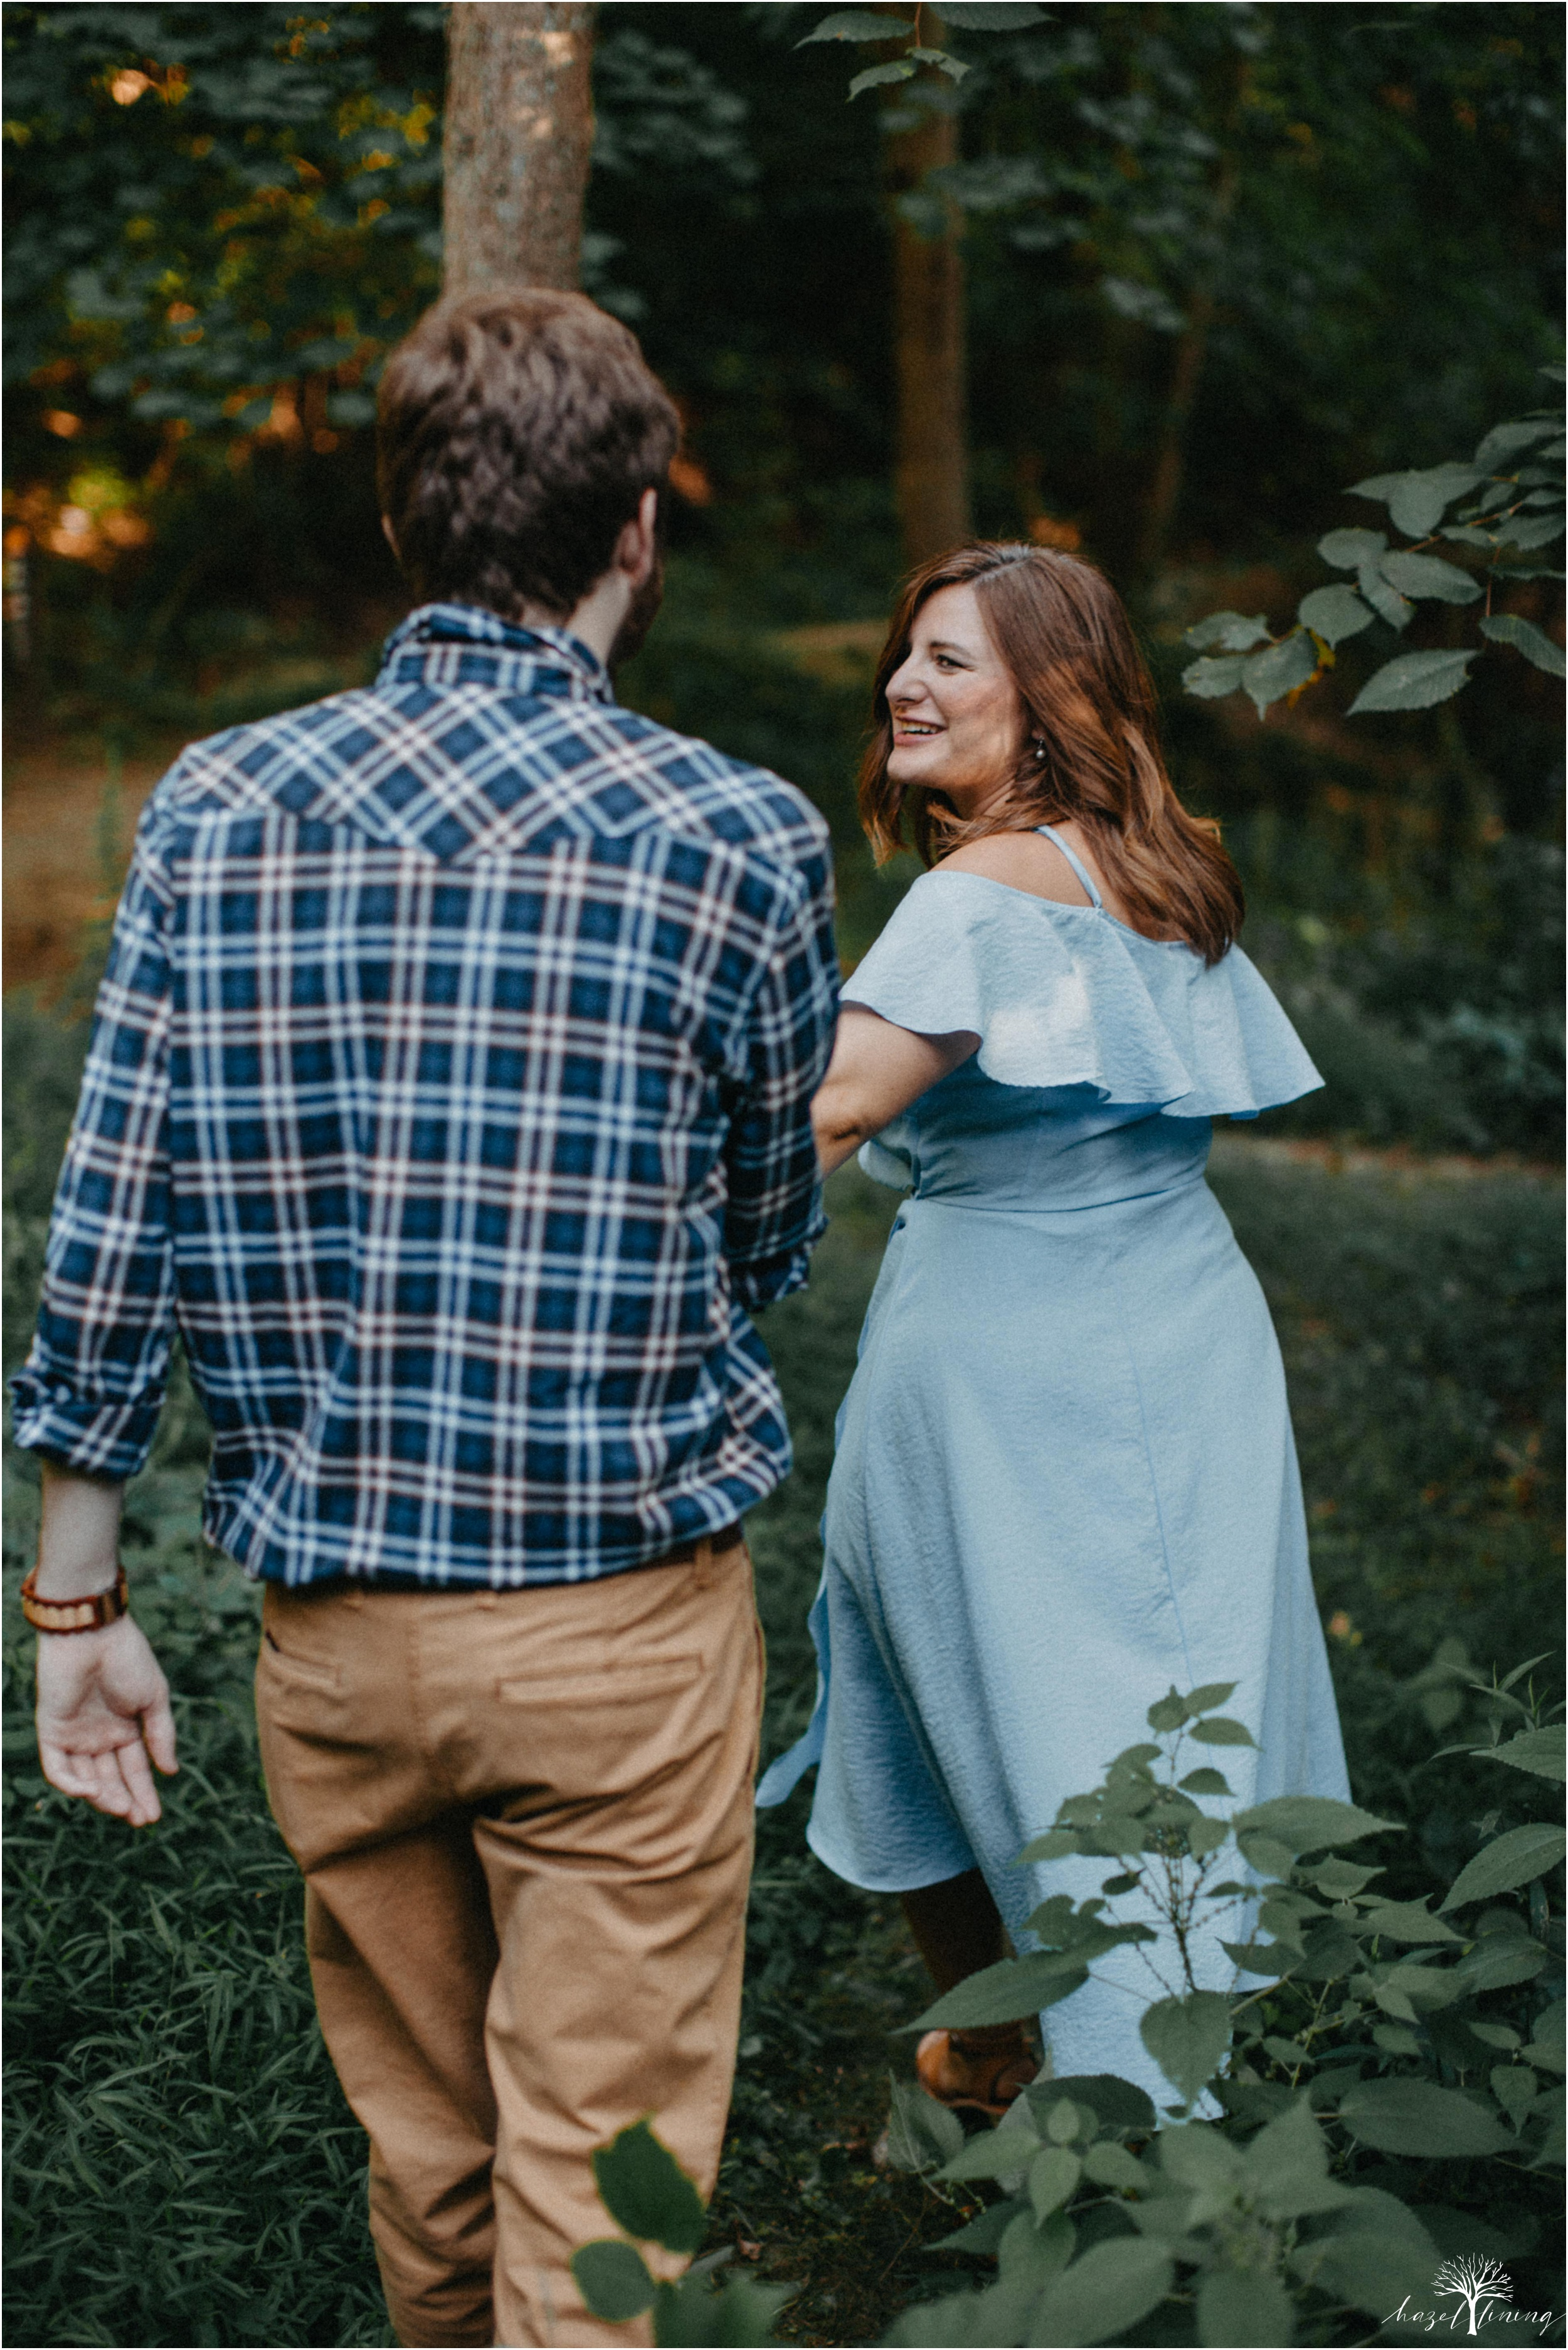 paige-kochey-chris-graham-valley-green-wissahickon-park-philadelphia-summer-engagement-session-hazel-lining-photography-destination-elopement-wedding-engagement-photography_0014.jpg